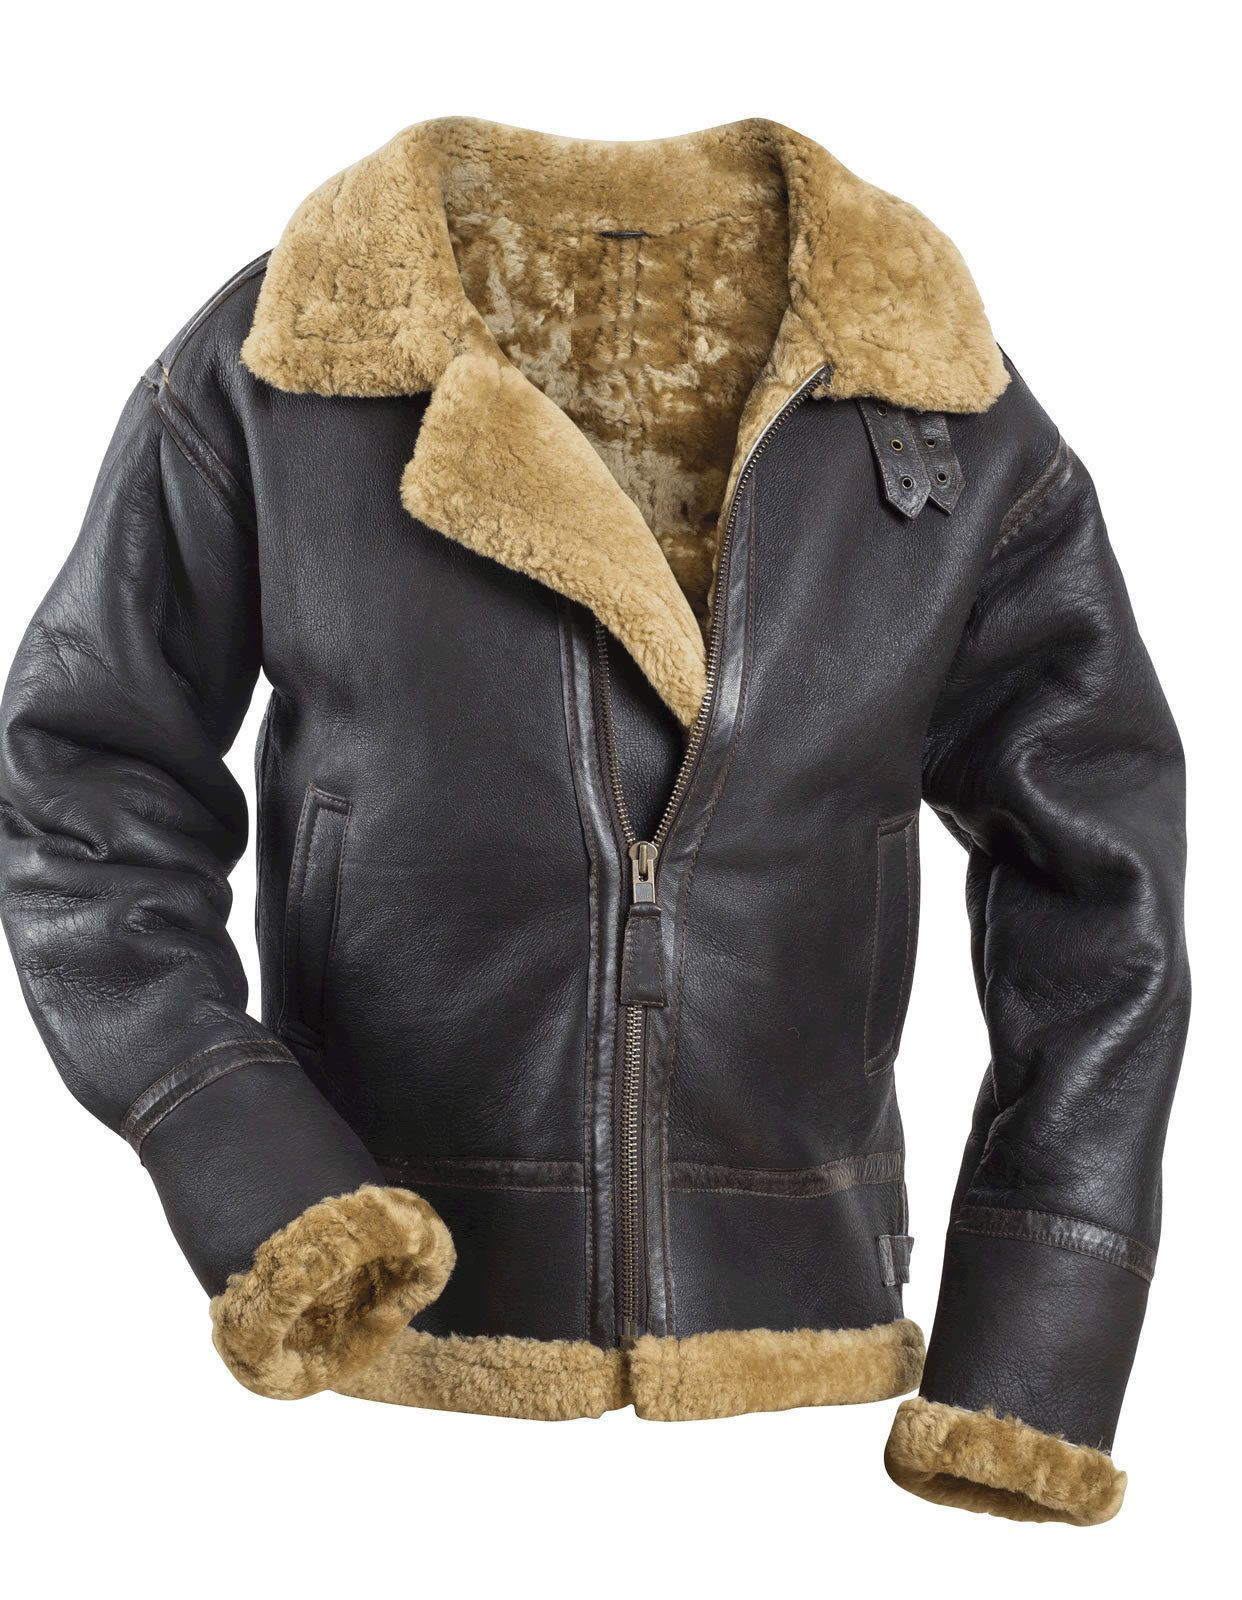 2b97fafe7455 RAF Sheepskin Bomber Jacket follows the 1938 Irvin Airchute Co. pattern. It  was worn by the pilots of the RAF during the Battle of Britain.